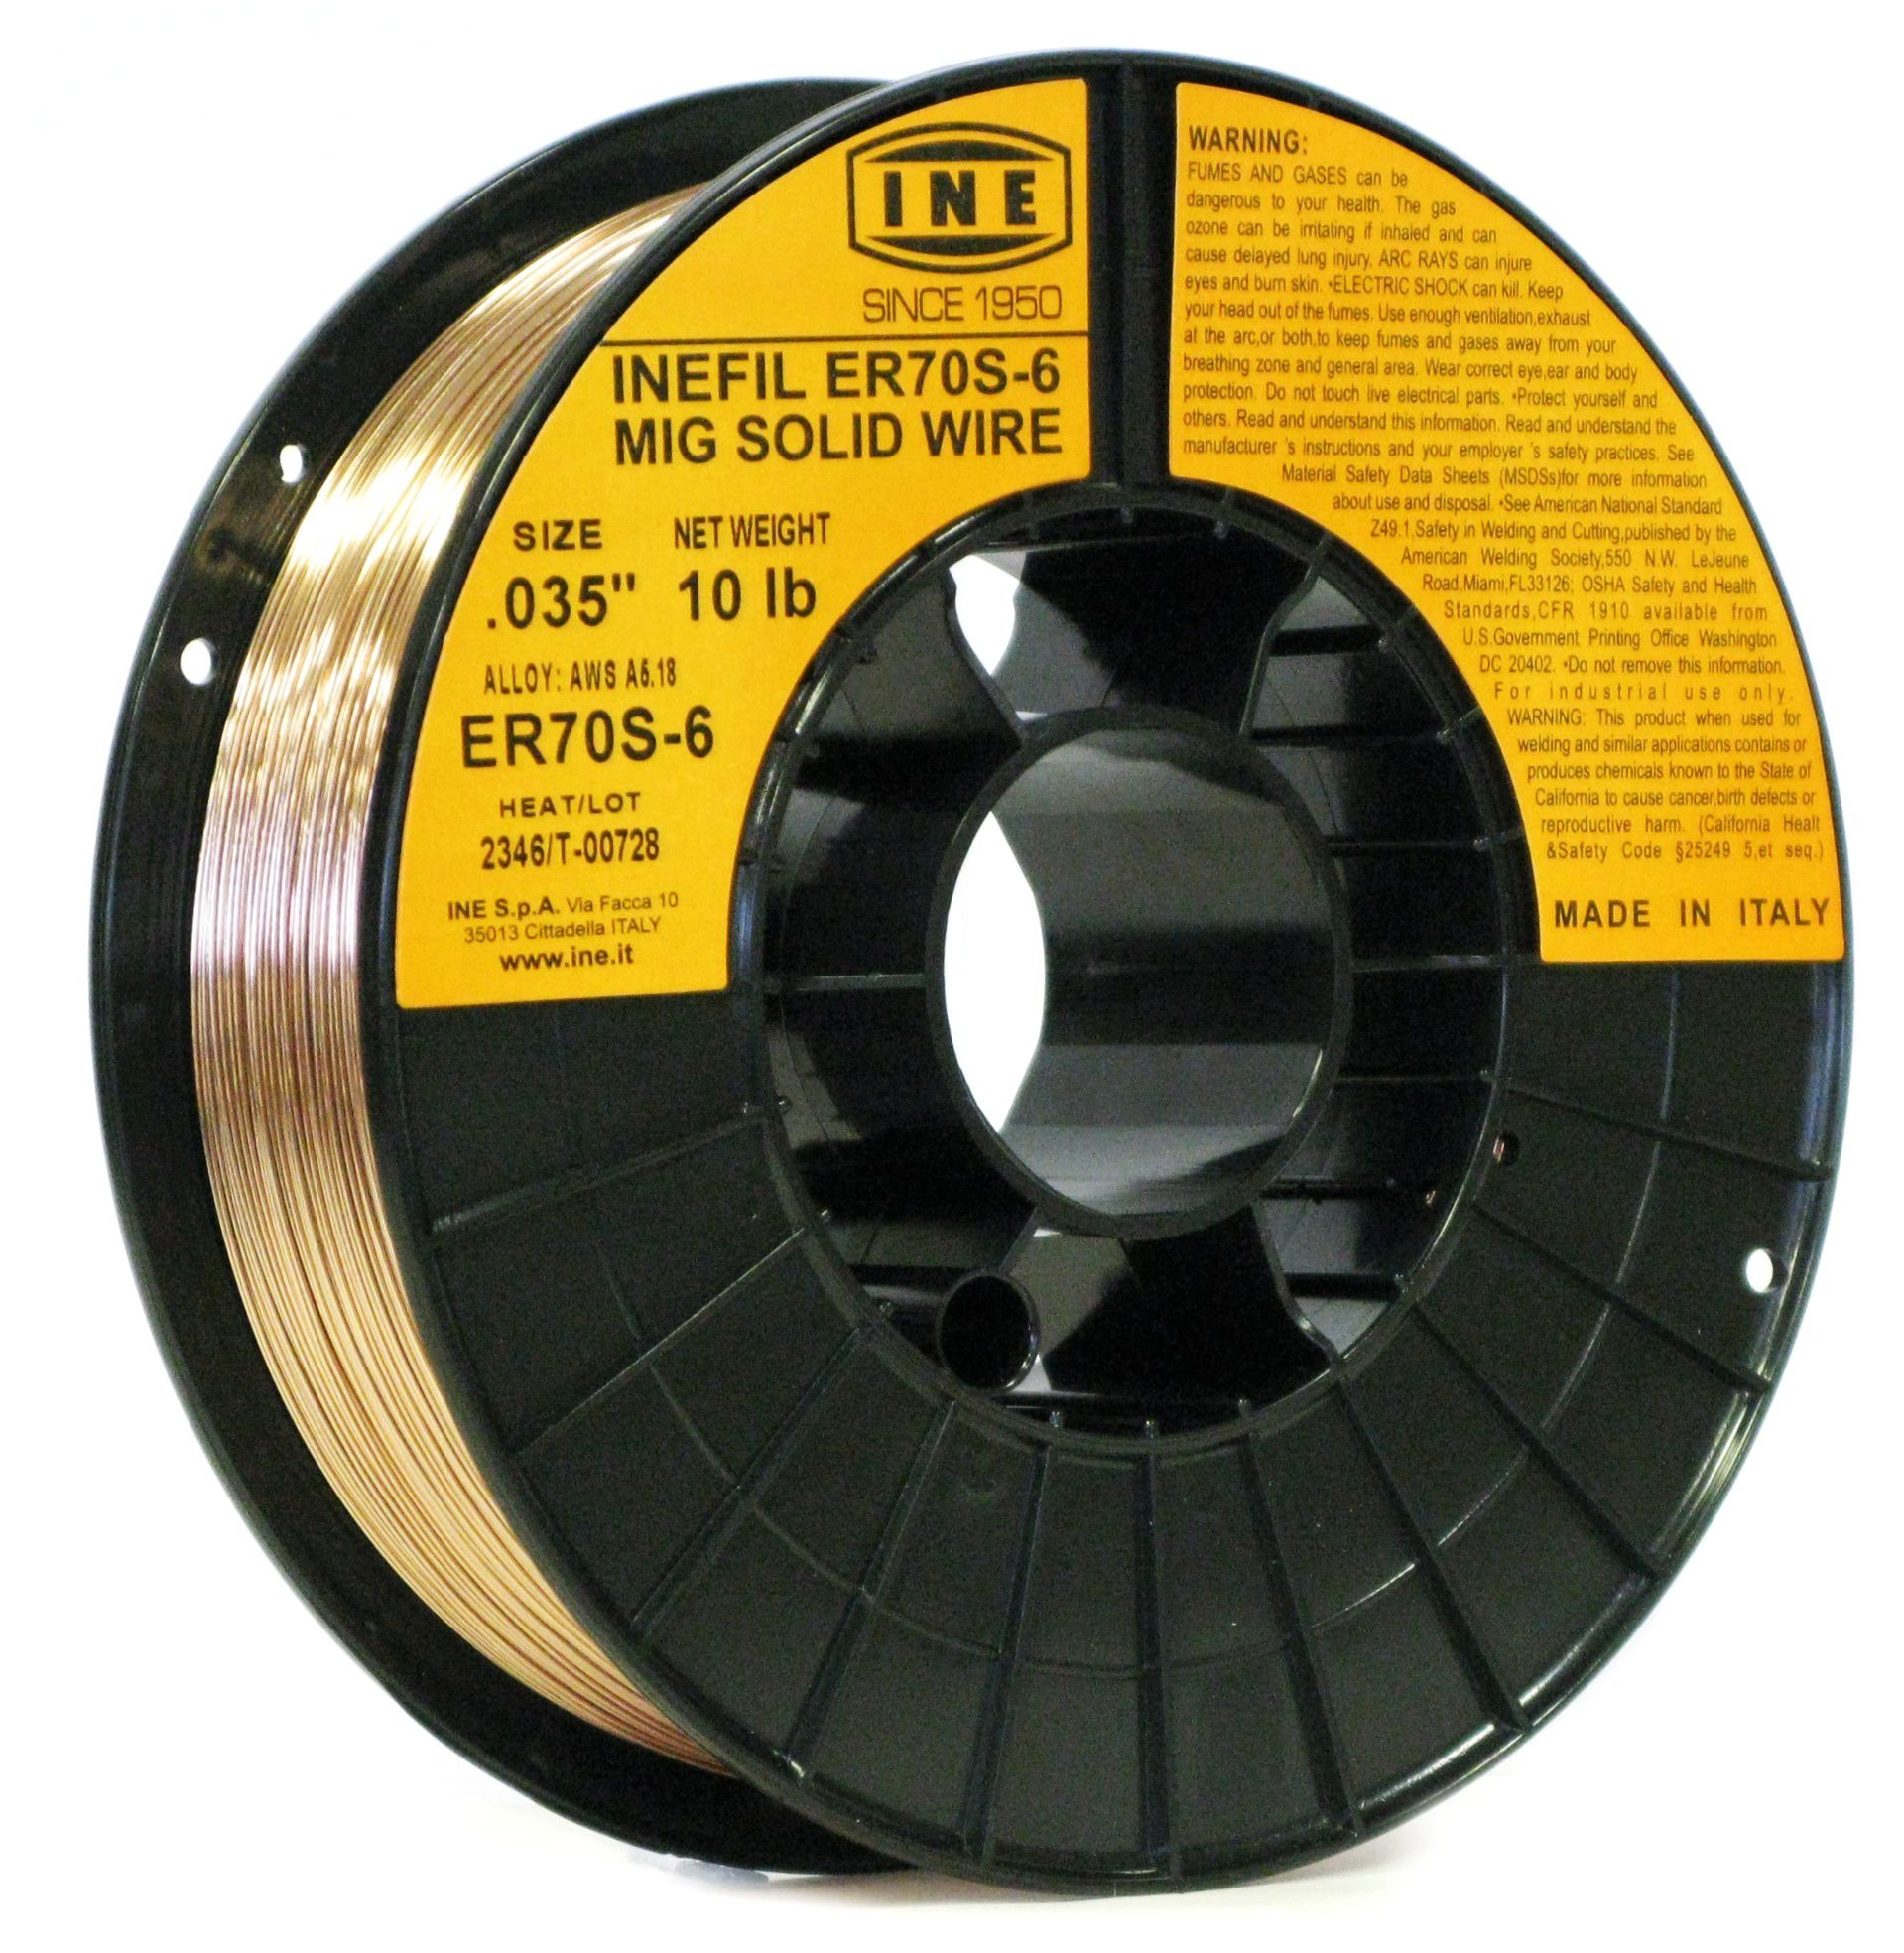 INEFIL ER70S-6 .035-Inch on 10-Pound Spool Carbon Steel Mig Solid Welding Wire by INE USA Since 1950